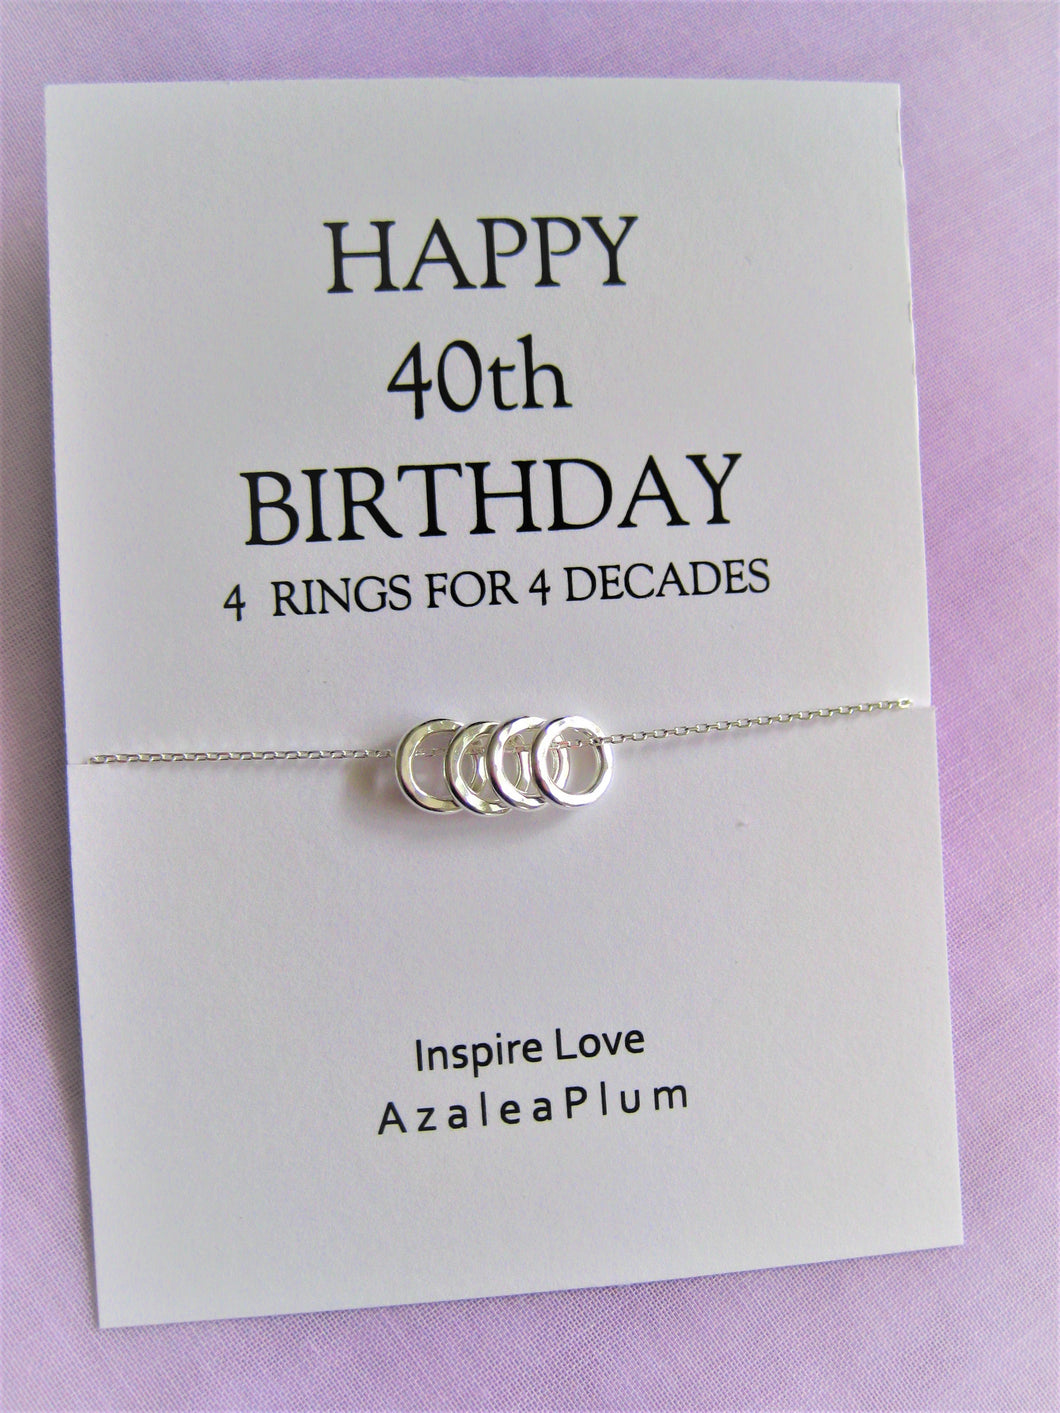 40th Birthday Gifts Women, Solid Sterling Silver Necklace, Birthday Necklace, Jewelry for Her, 40th Birthday Gift, 40th Birthday Necklace